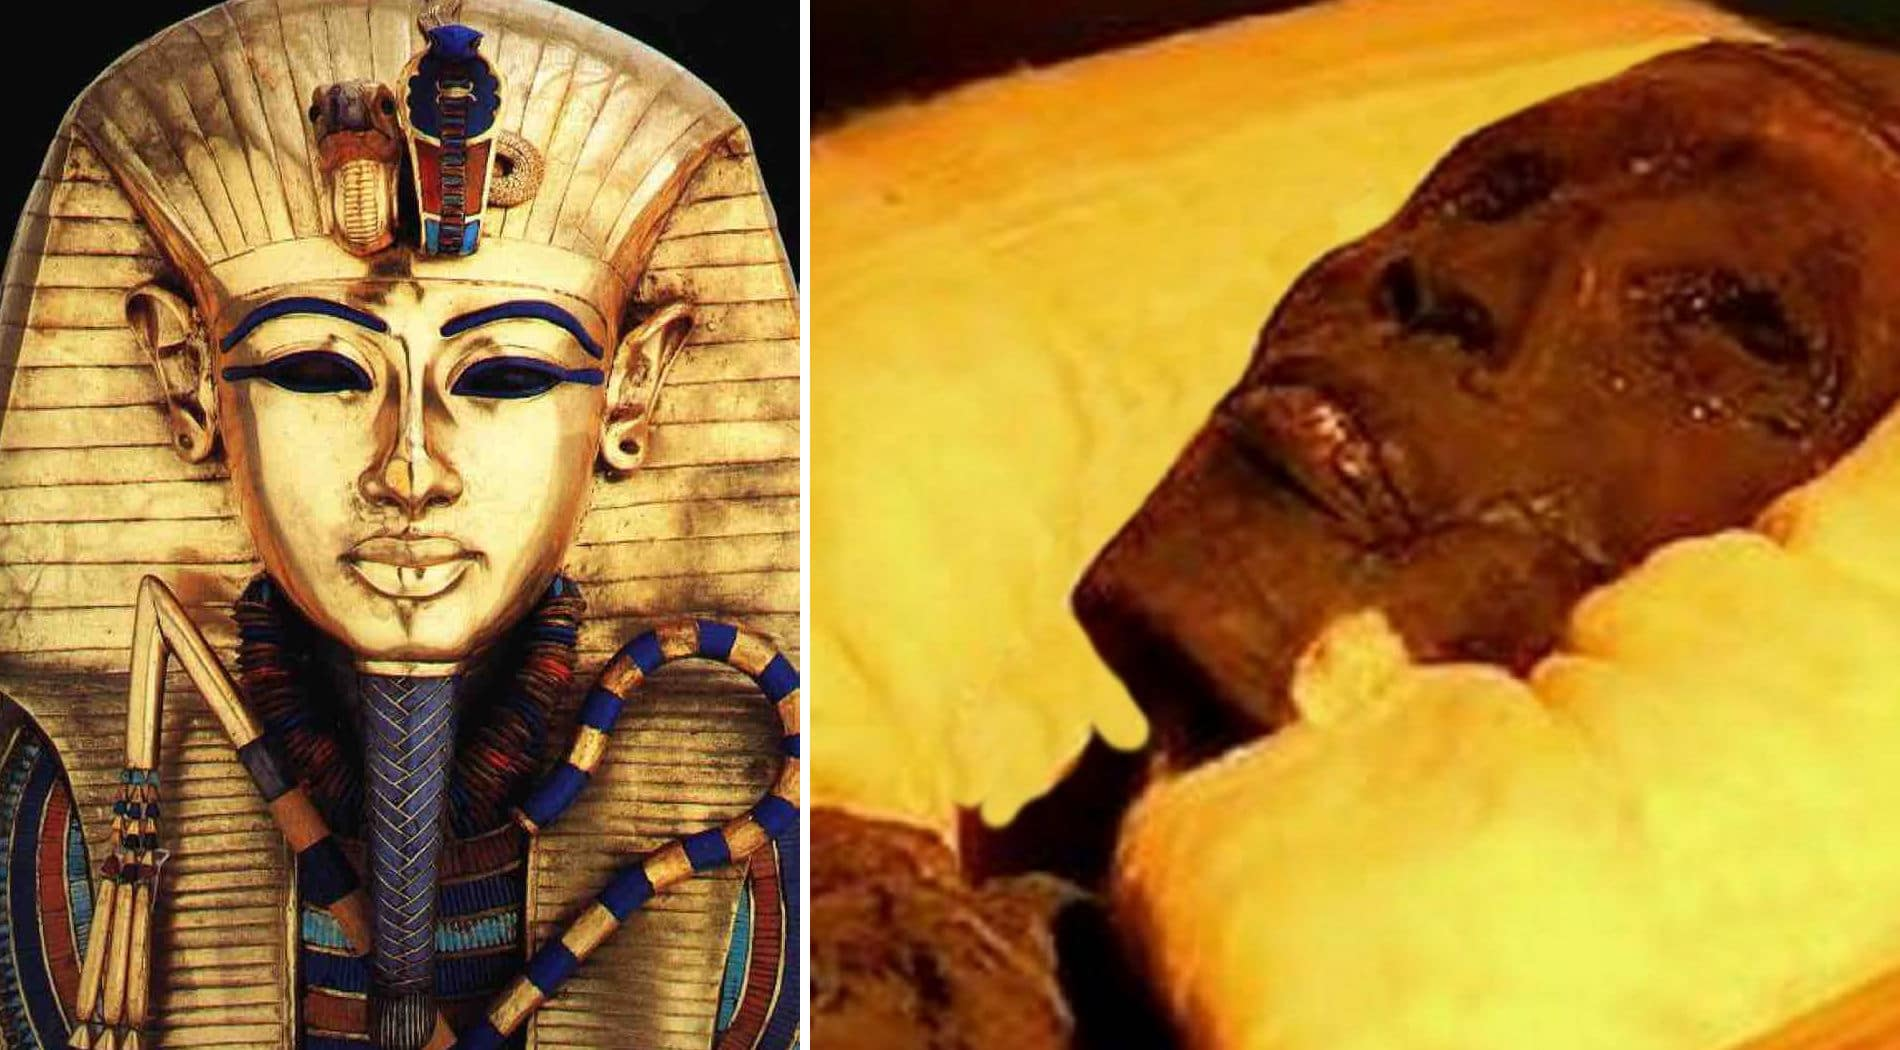 Still popular in Luxor: Eye to eye with King Tut! - King Goya